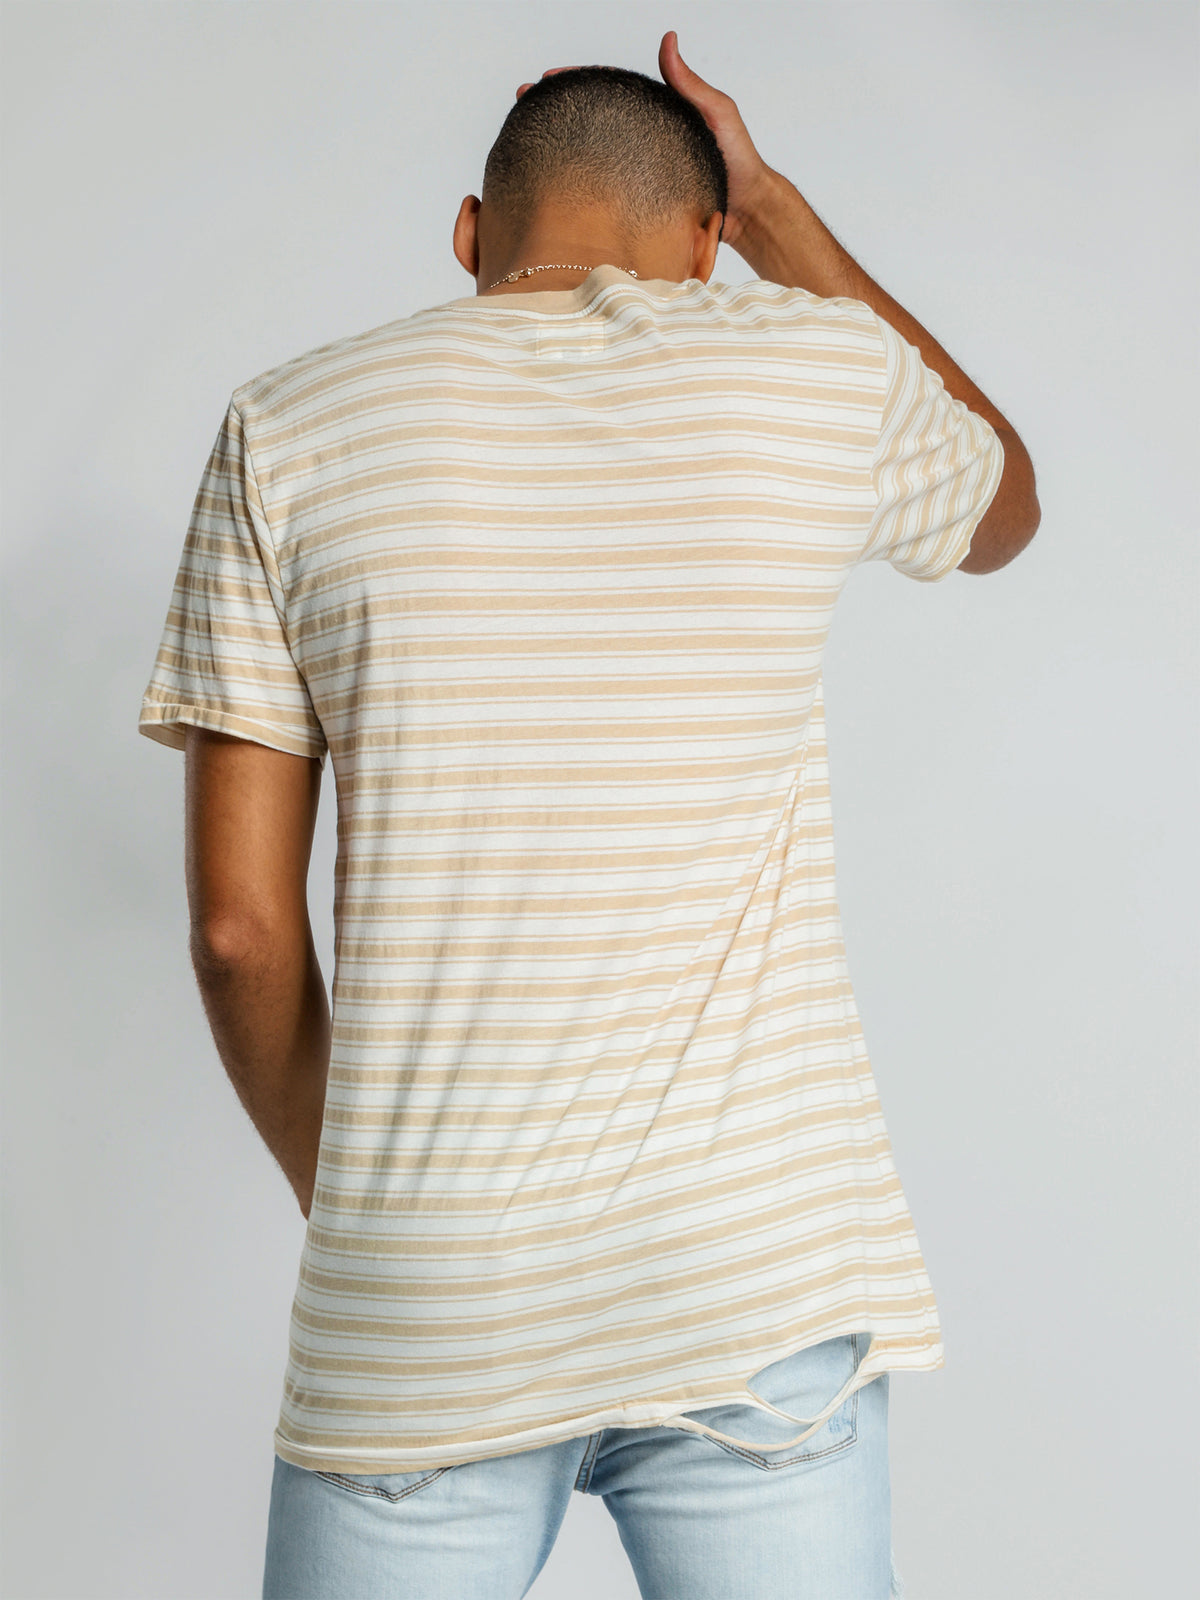 1cm Stripe T-Shirt in Yellow & White